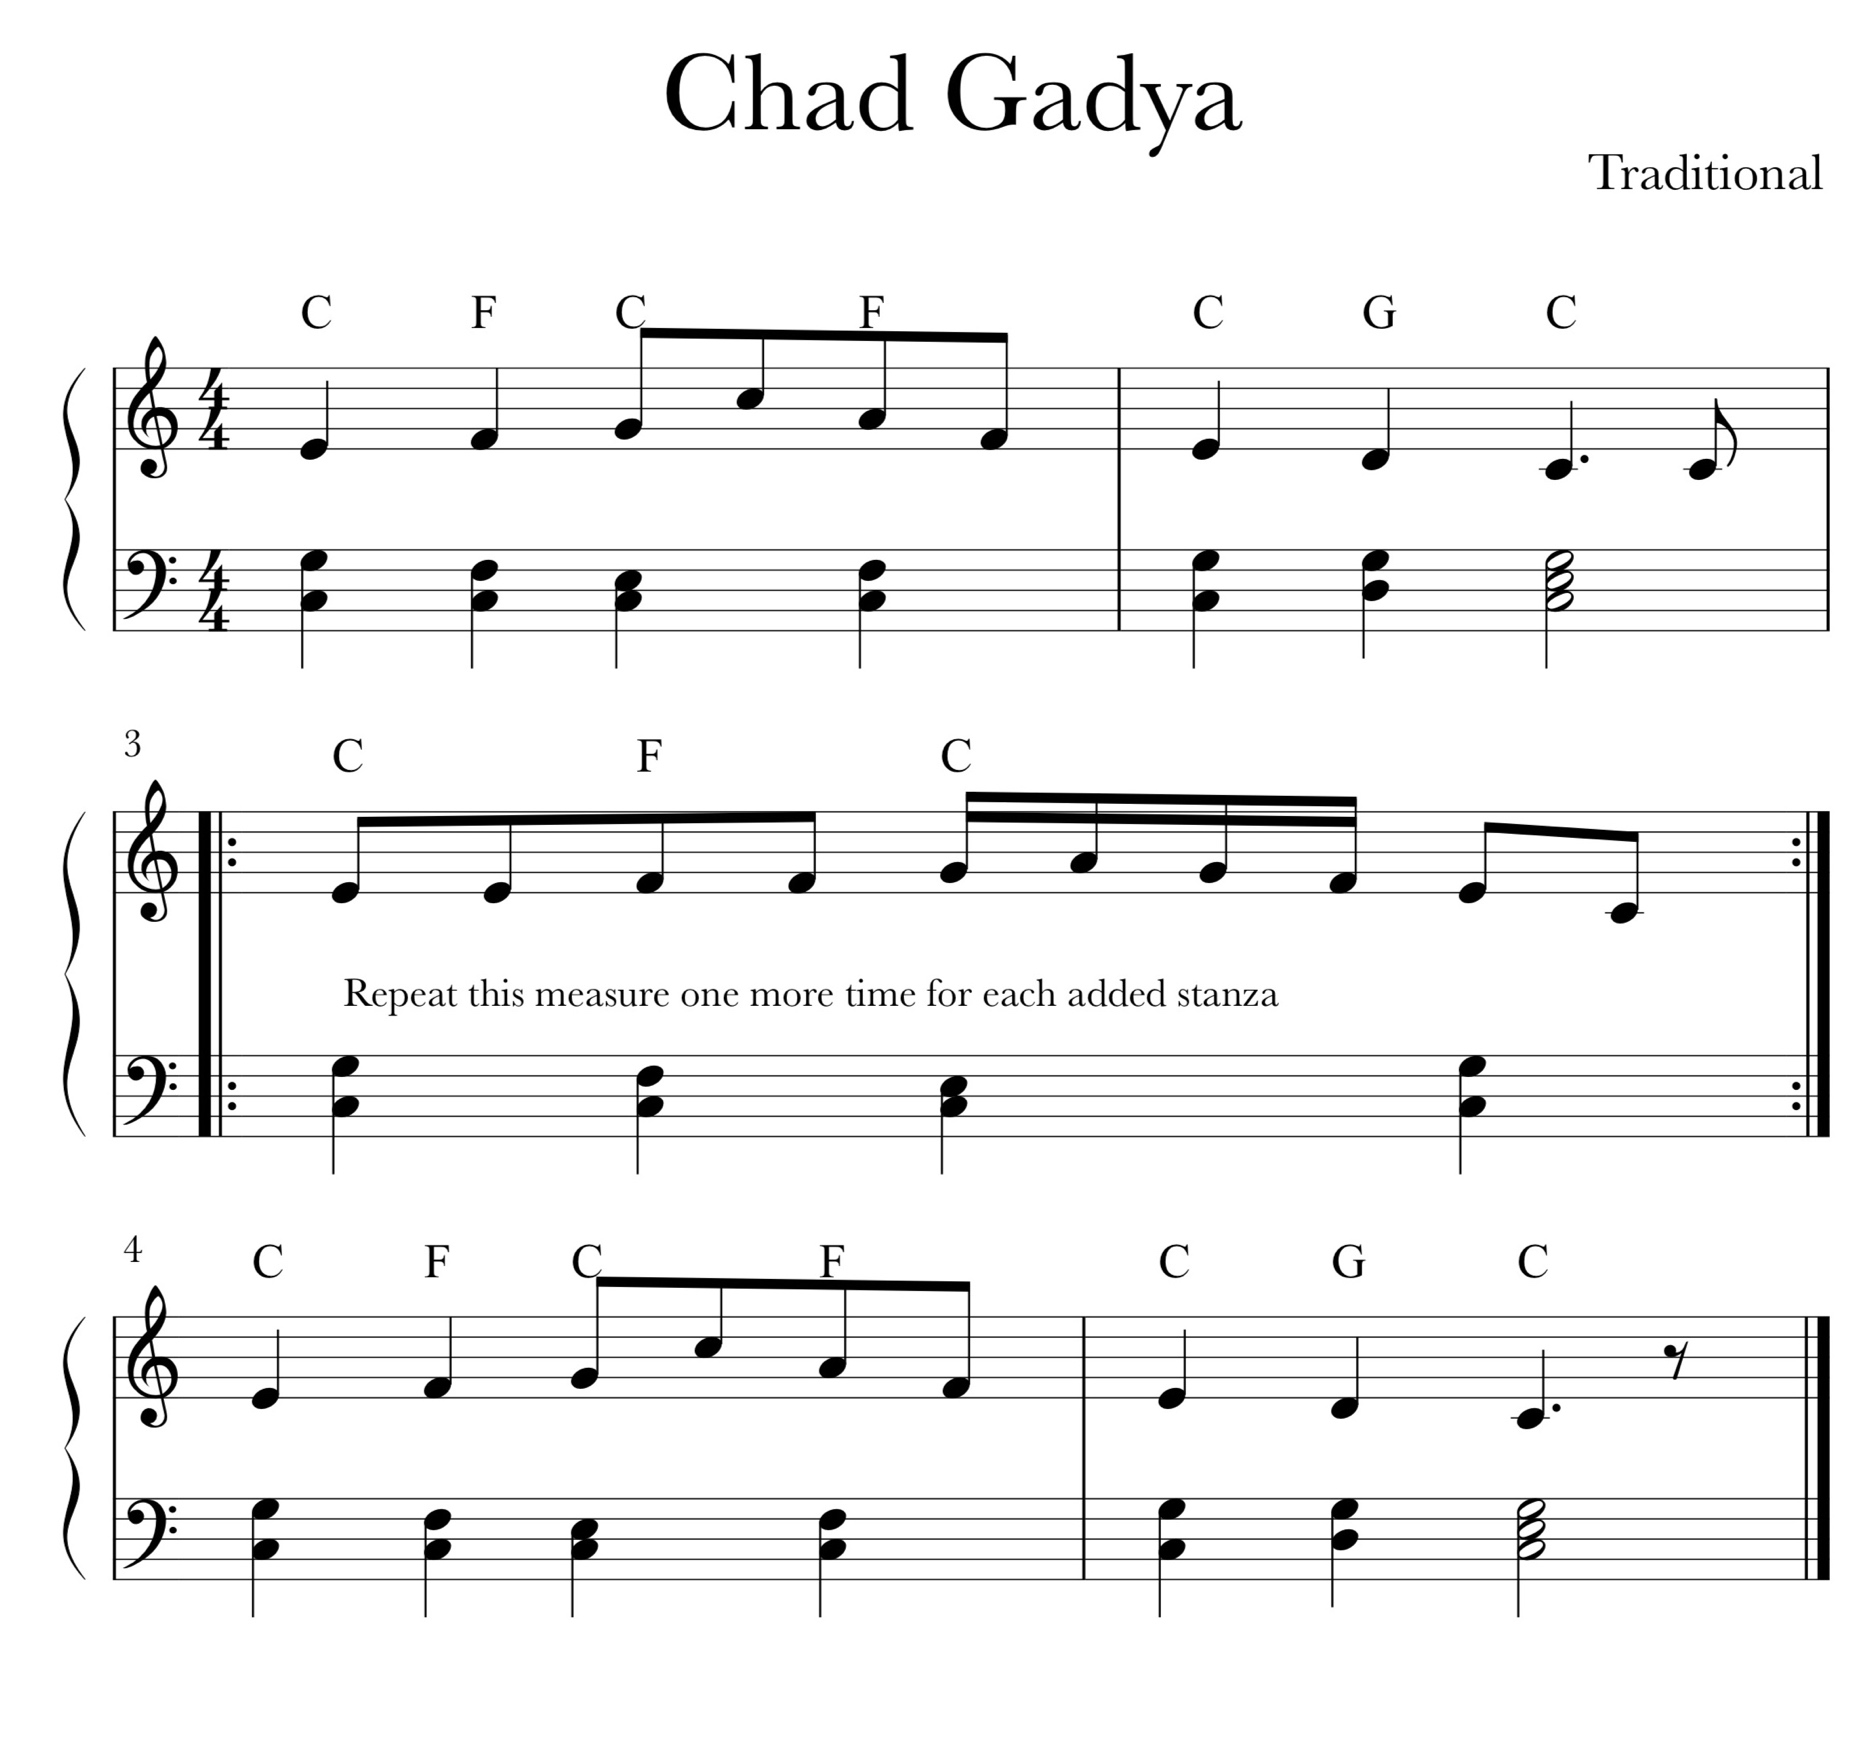 Sheet Music for Chad Gadya